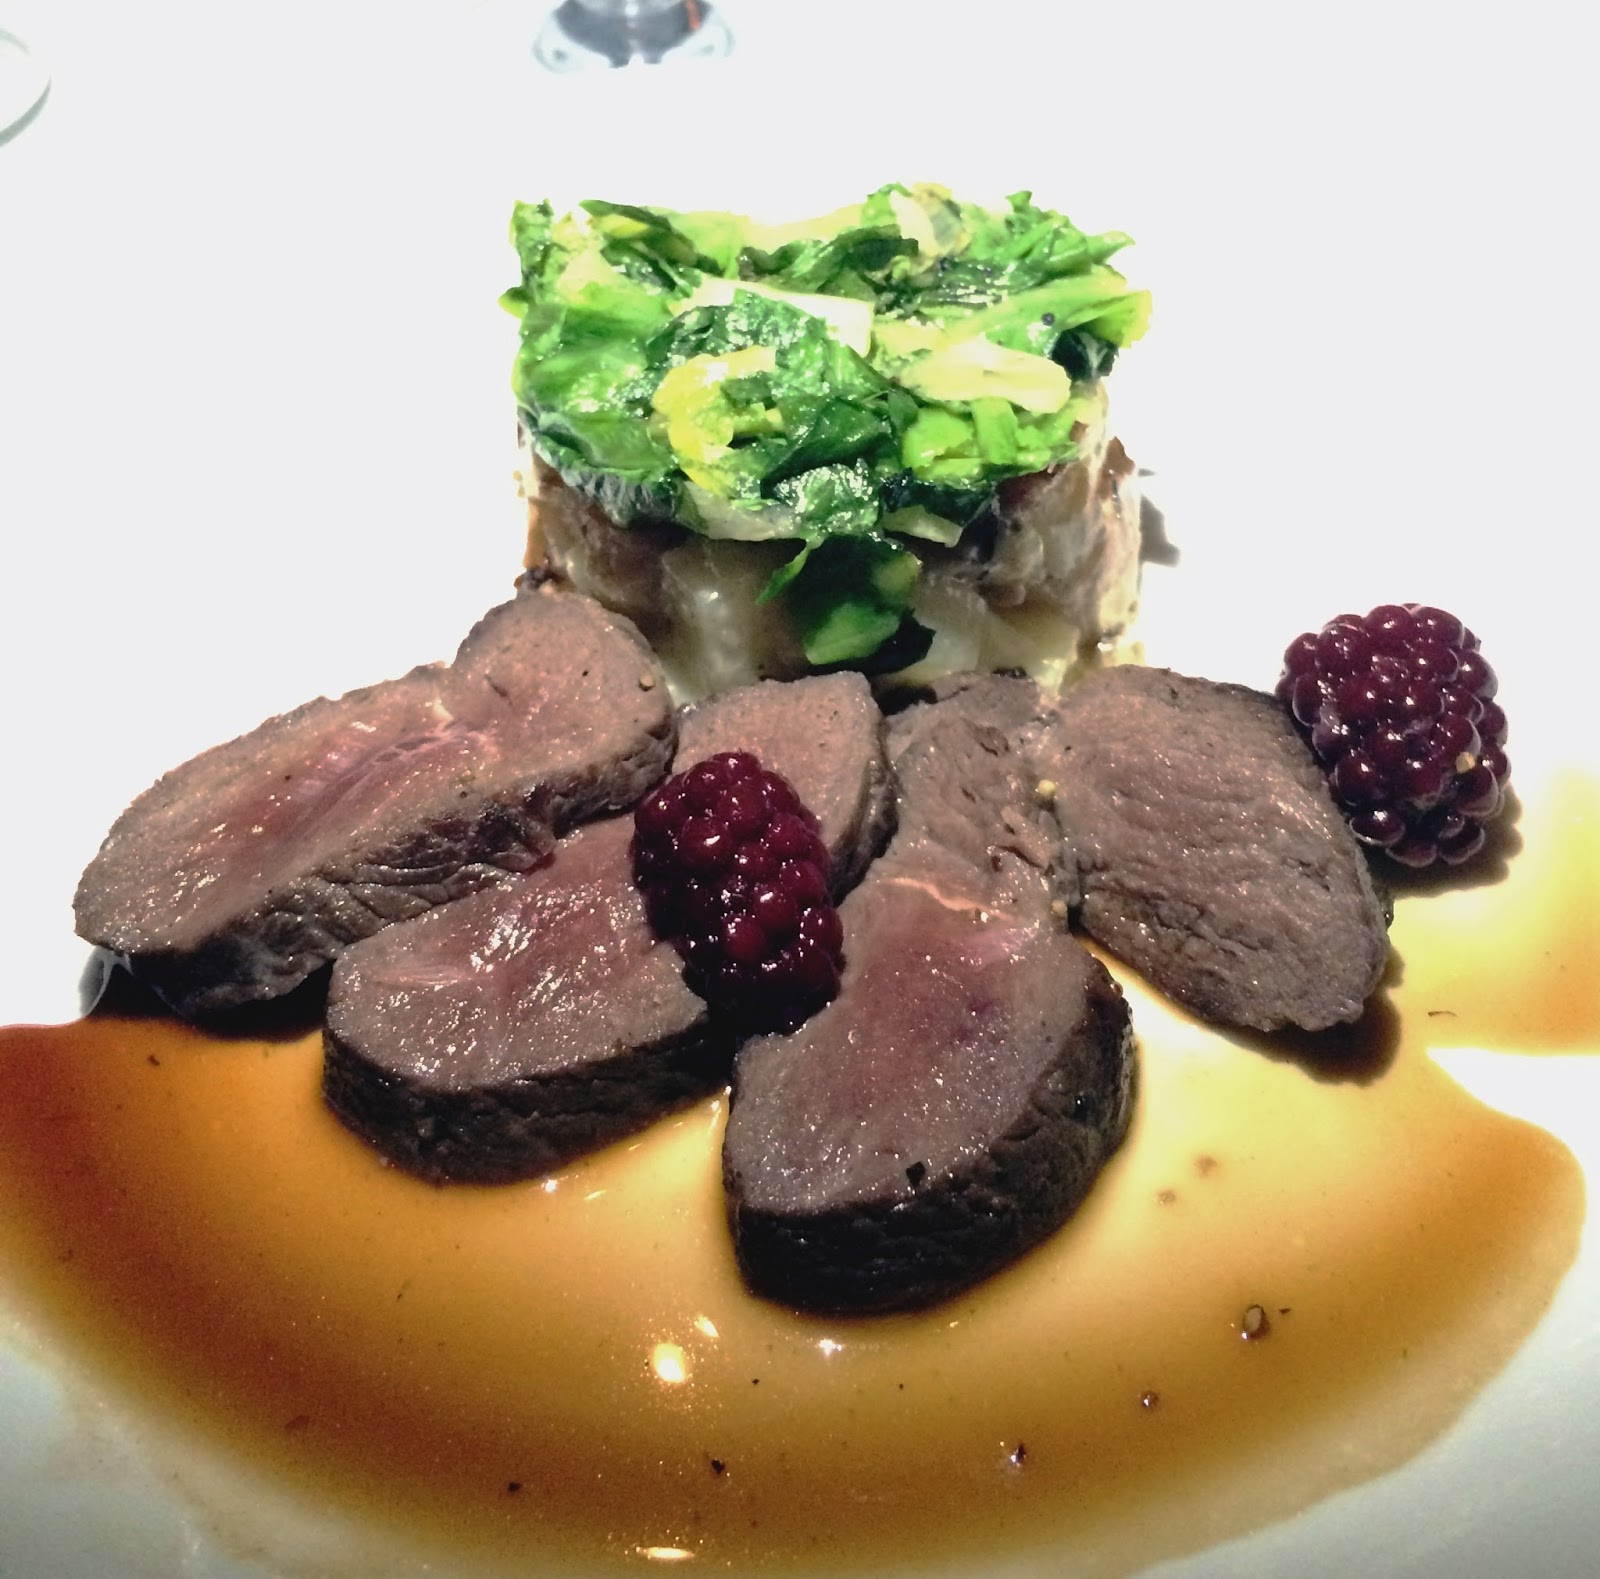 venison  at Watermark in the Gulch in Nashville, Tennessee